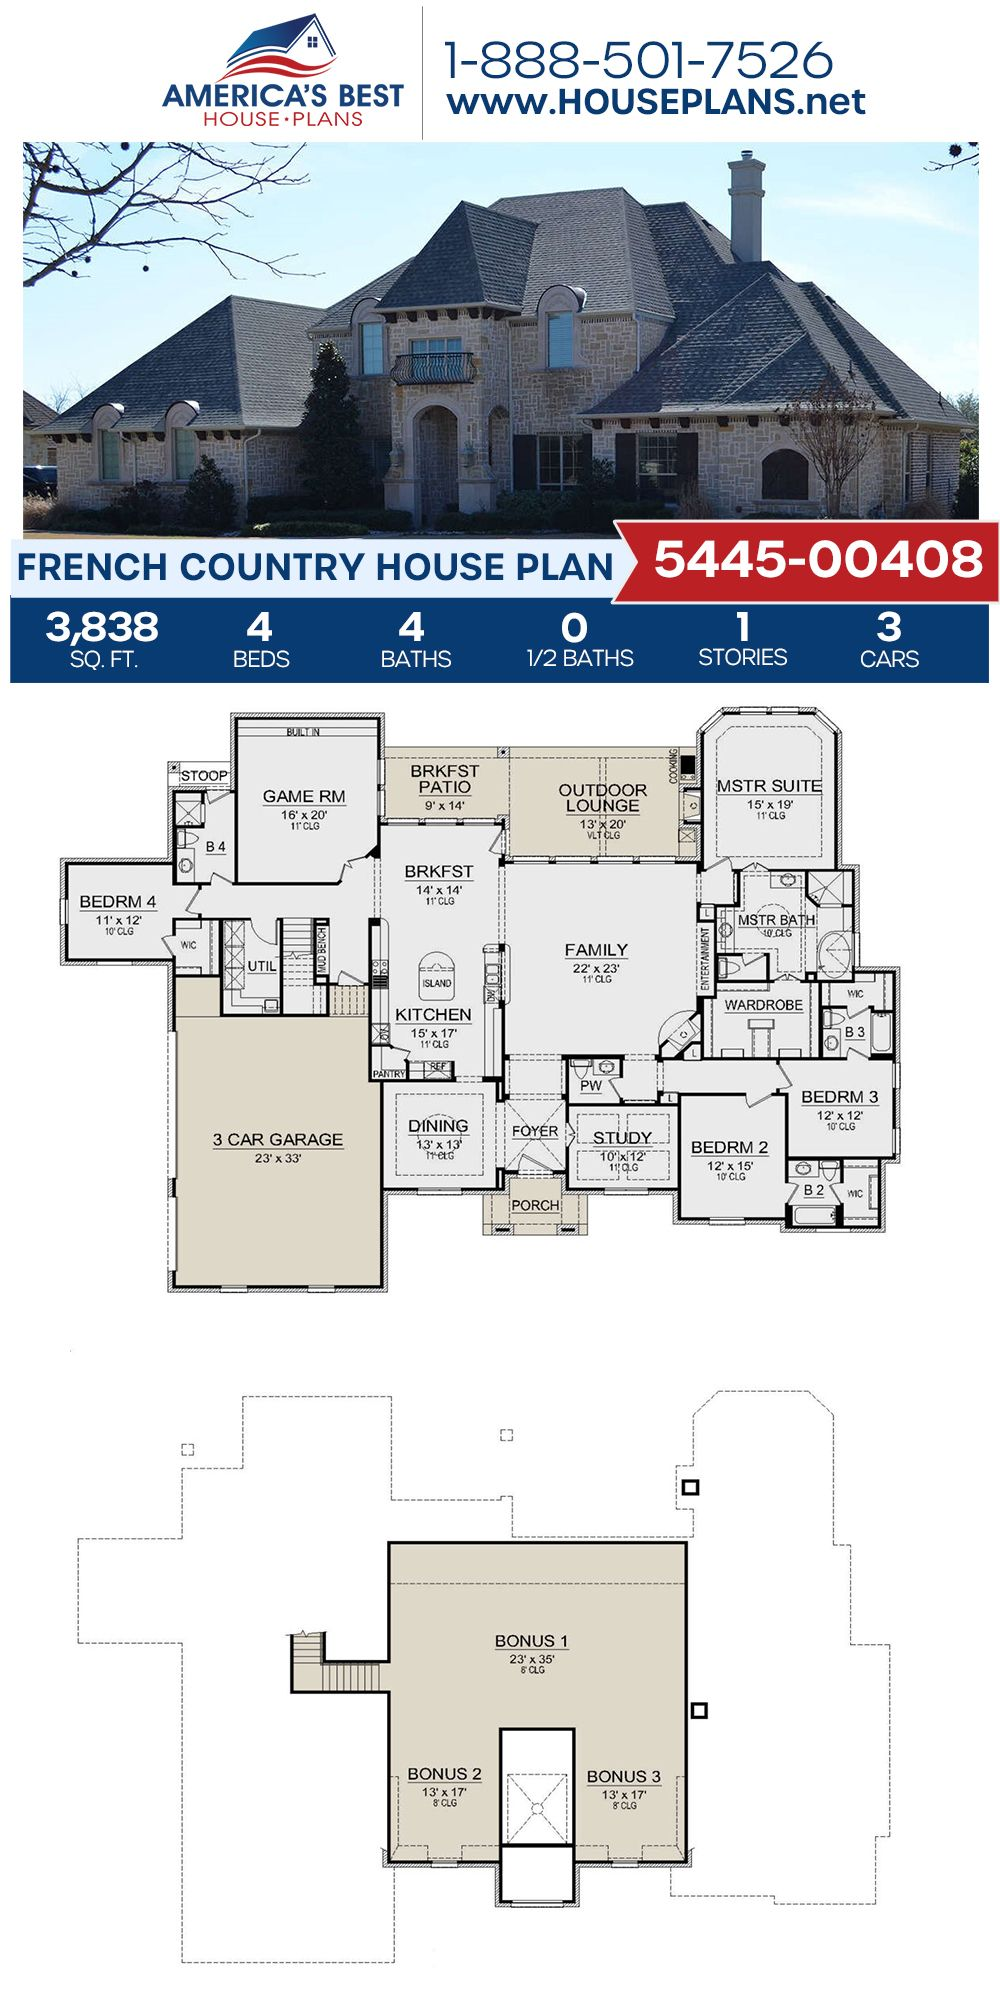 House Plan 5445 00408 French Country Plan 3 838 Square Feet 4 Bedrooms 4 Bathrooms French Country House Plans French Country House Country House Plan